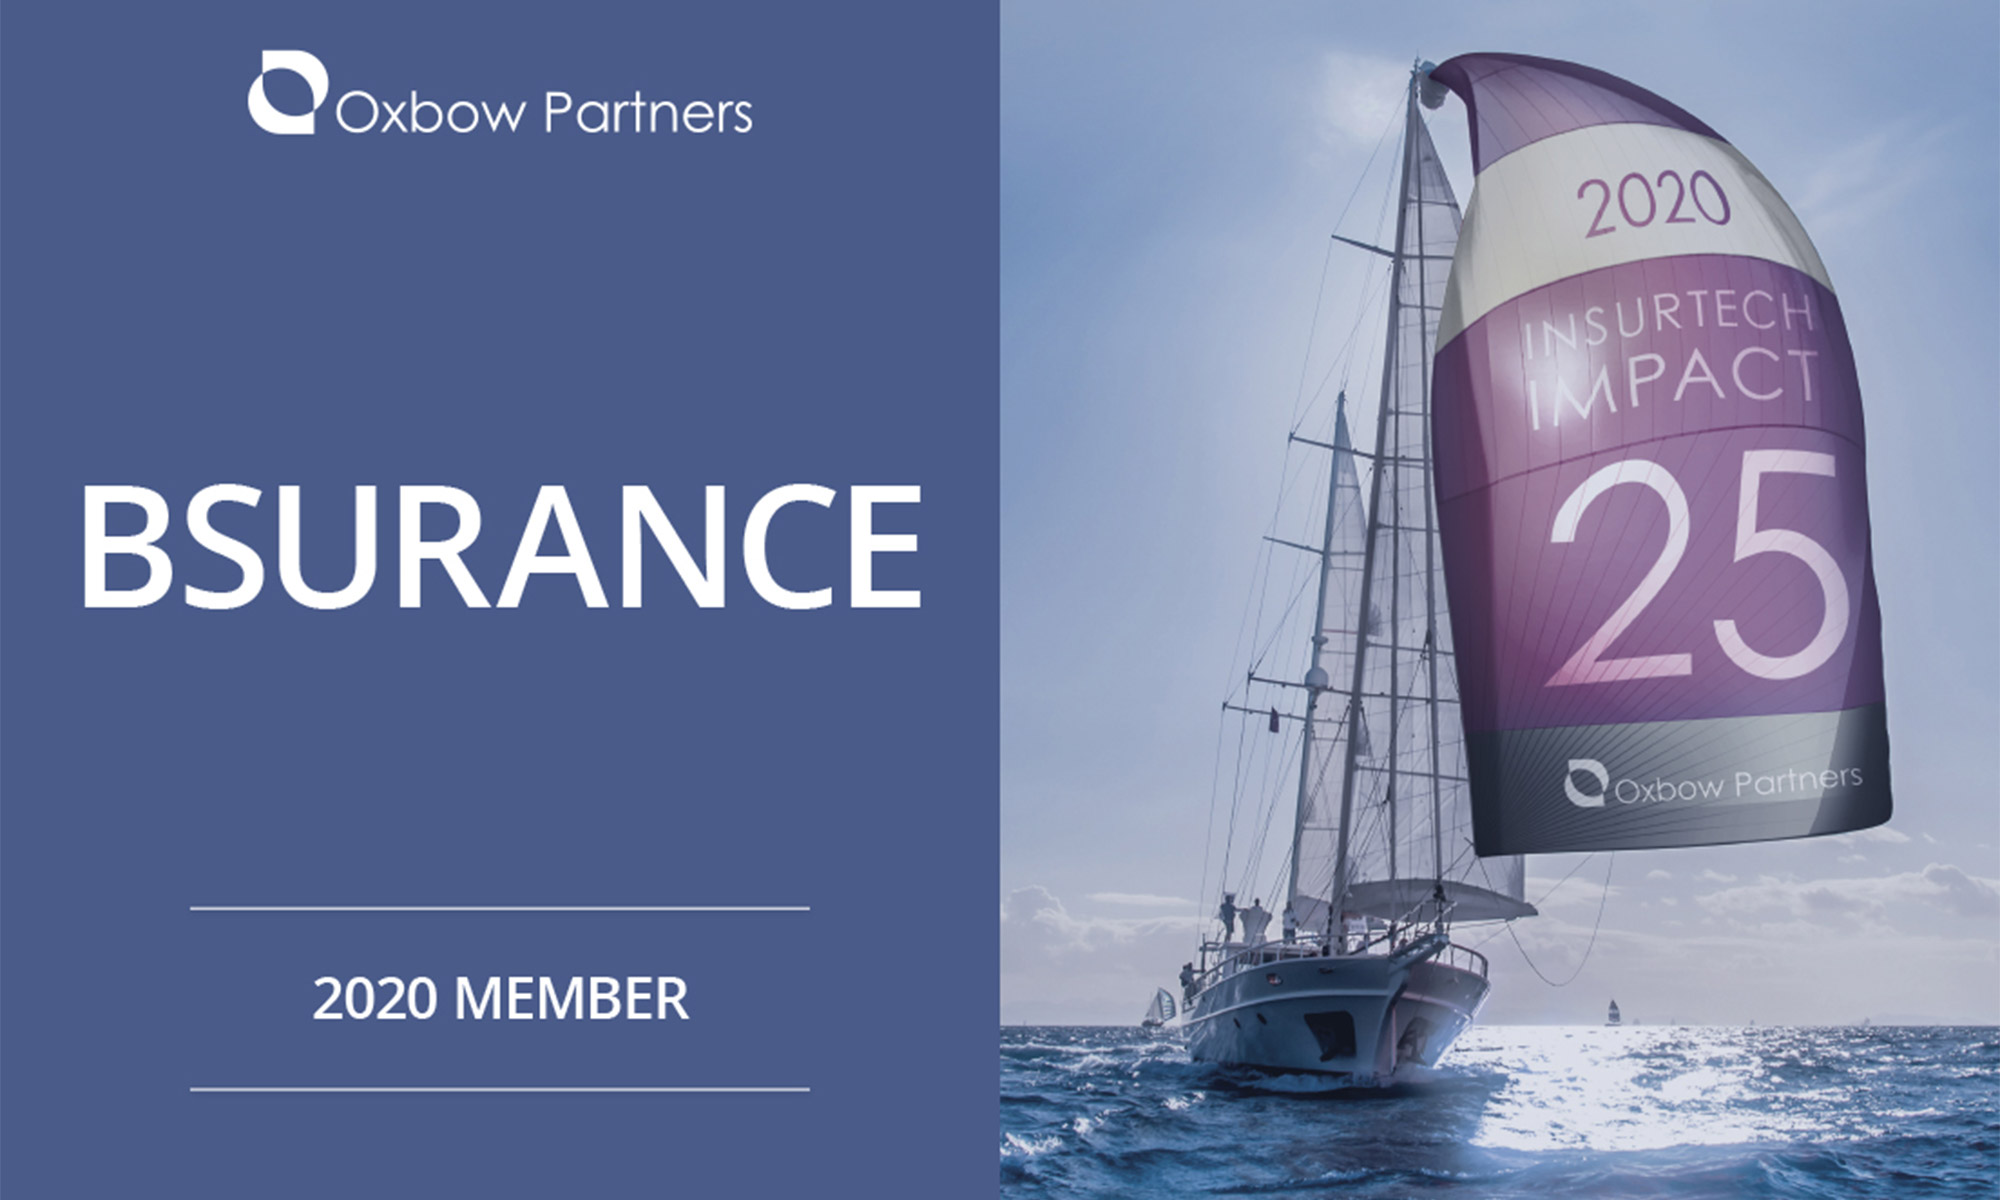 Oxbow Partners Insurtech Impact 25 2020 - bsurance